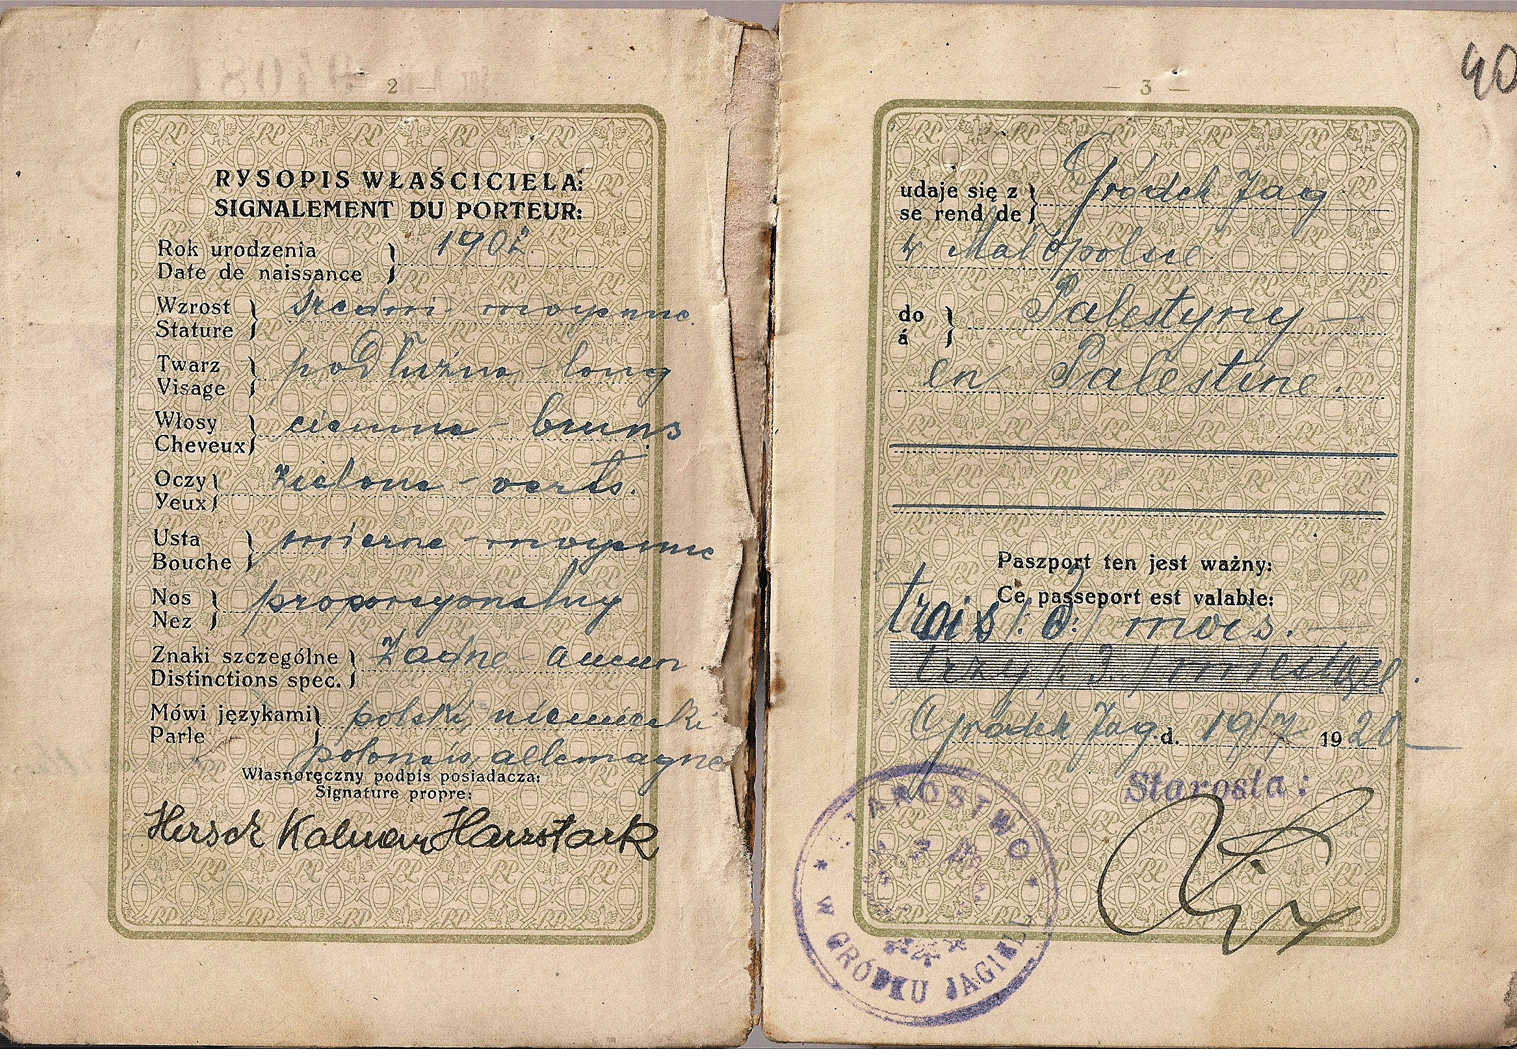 1920 Polish passport